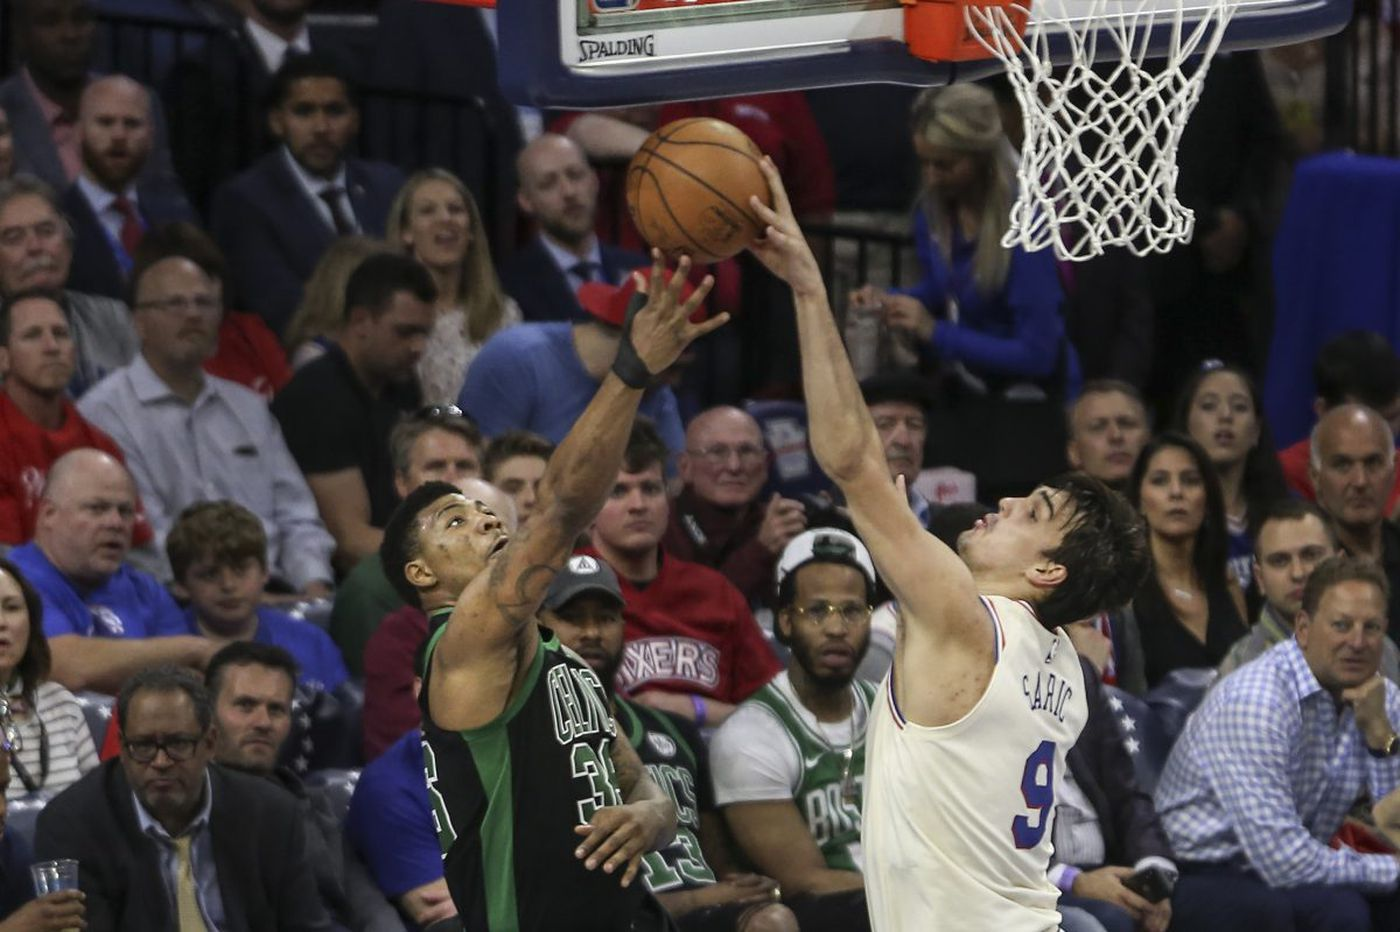 After tough start to series, Dario Saric leads Sixers to Game 4 win over Celtics